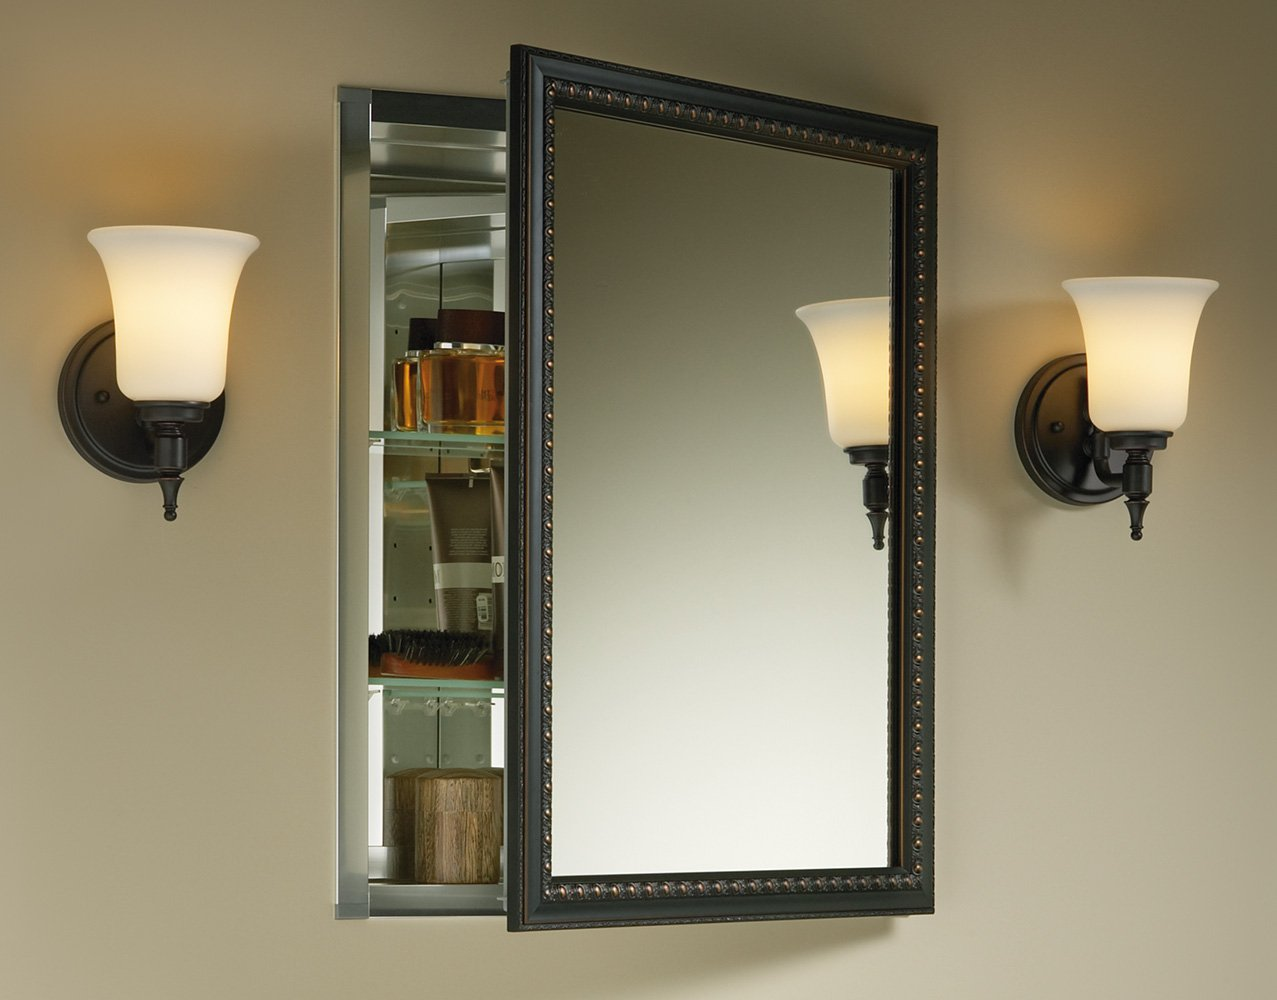 Amazon.com: Kohler K 2967 BR1 Aluminum Cabinet With Oil Rubbed Bronze  Framed Mirror Door, Oil Rubbed Bronze: Home Improvement Part 89